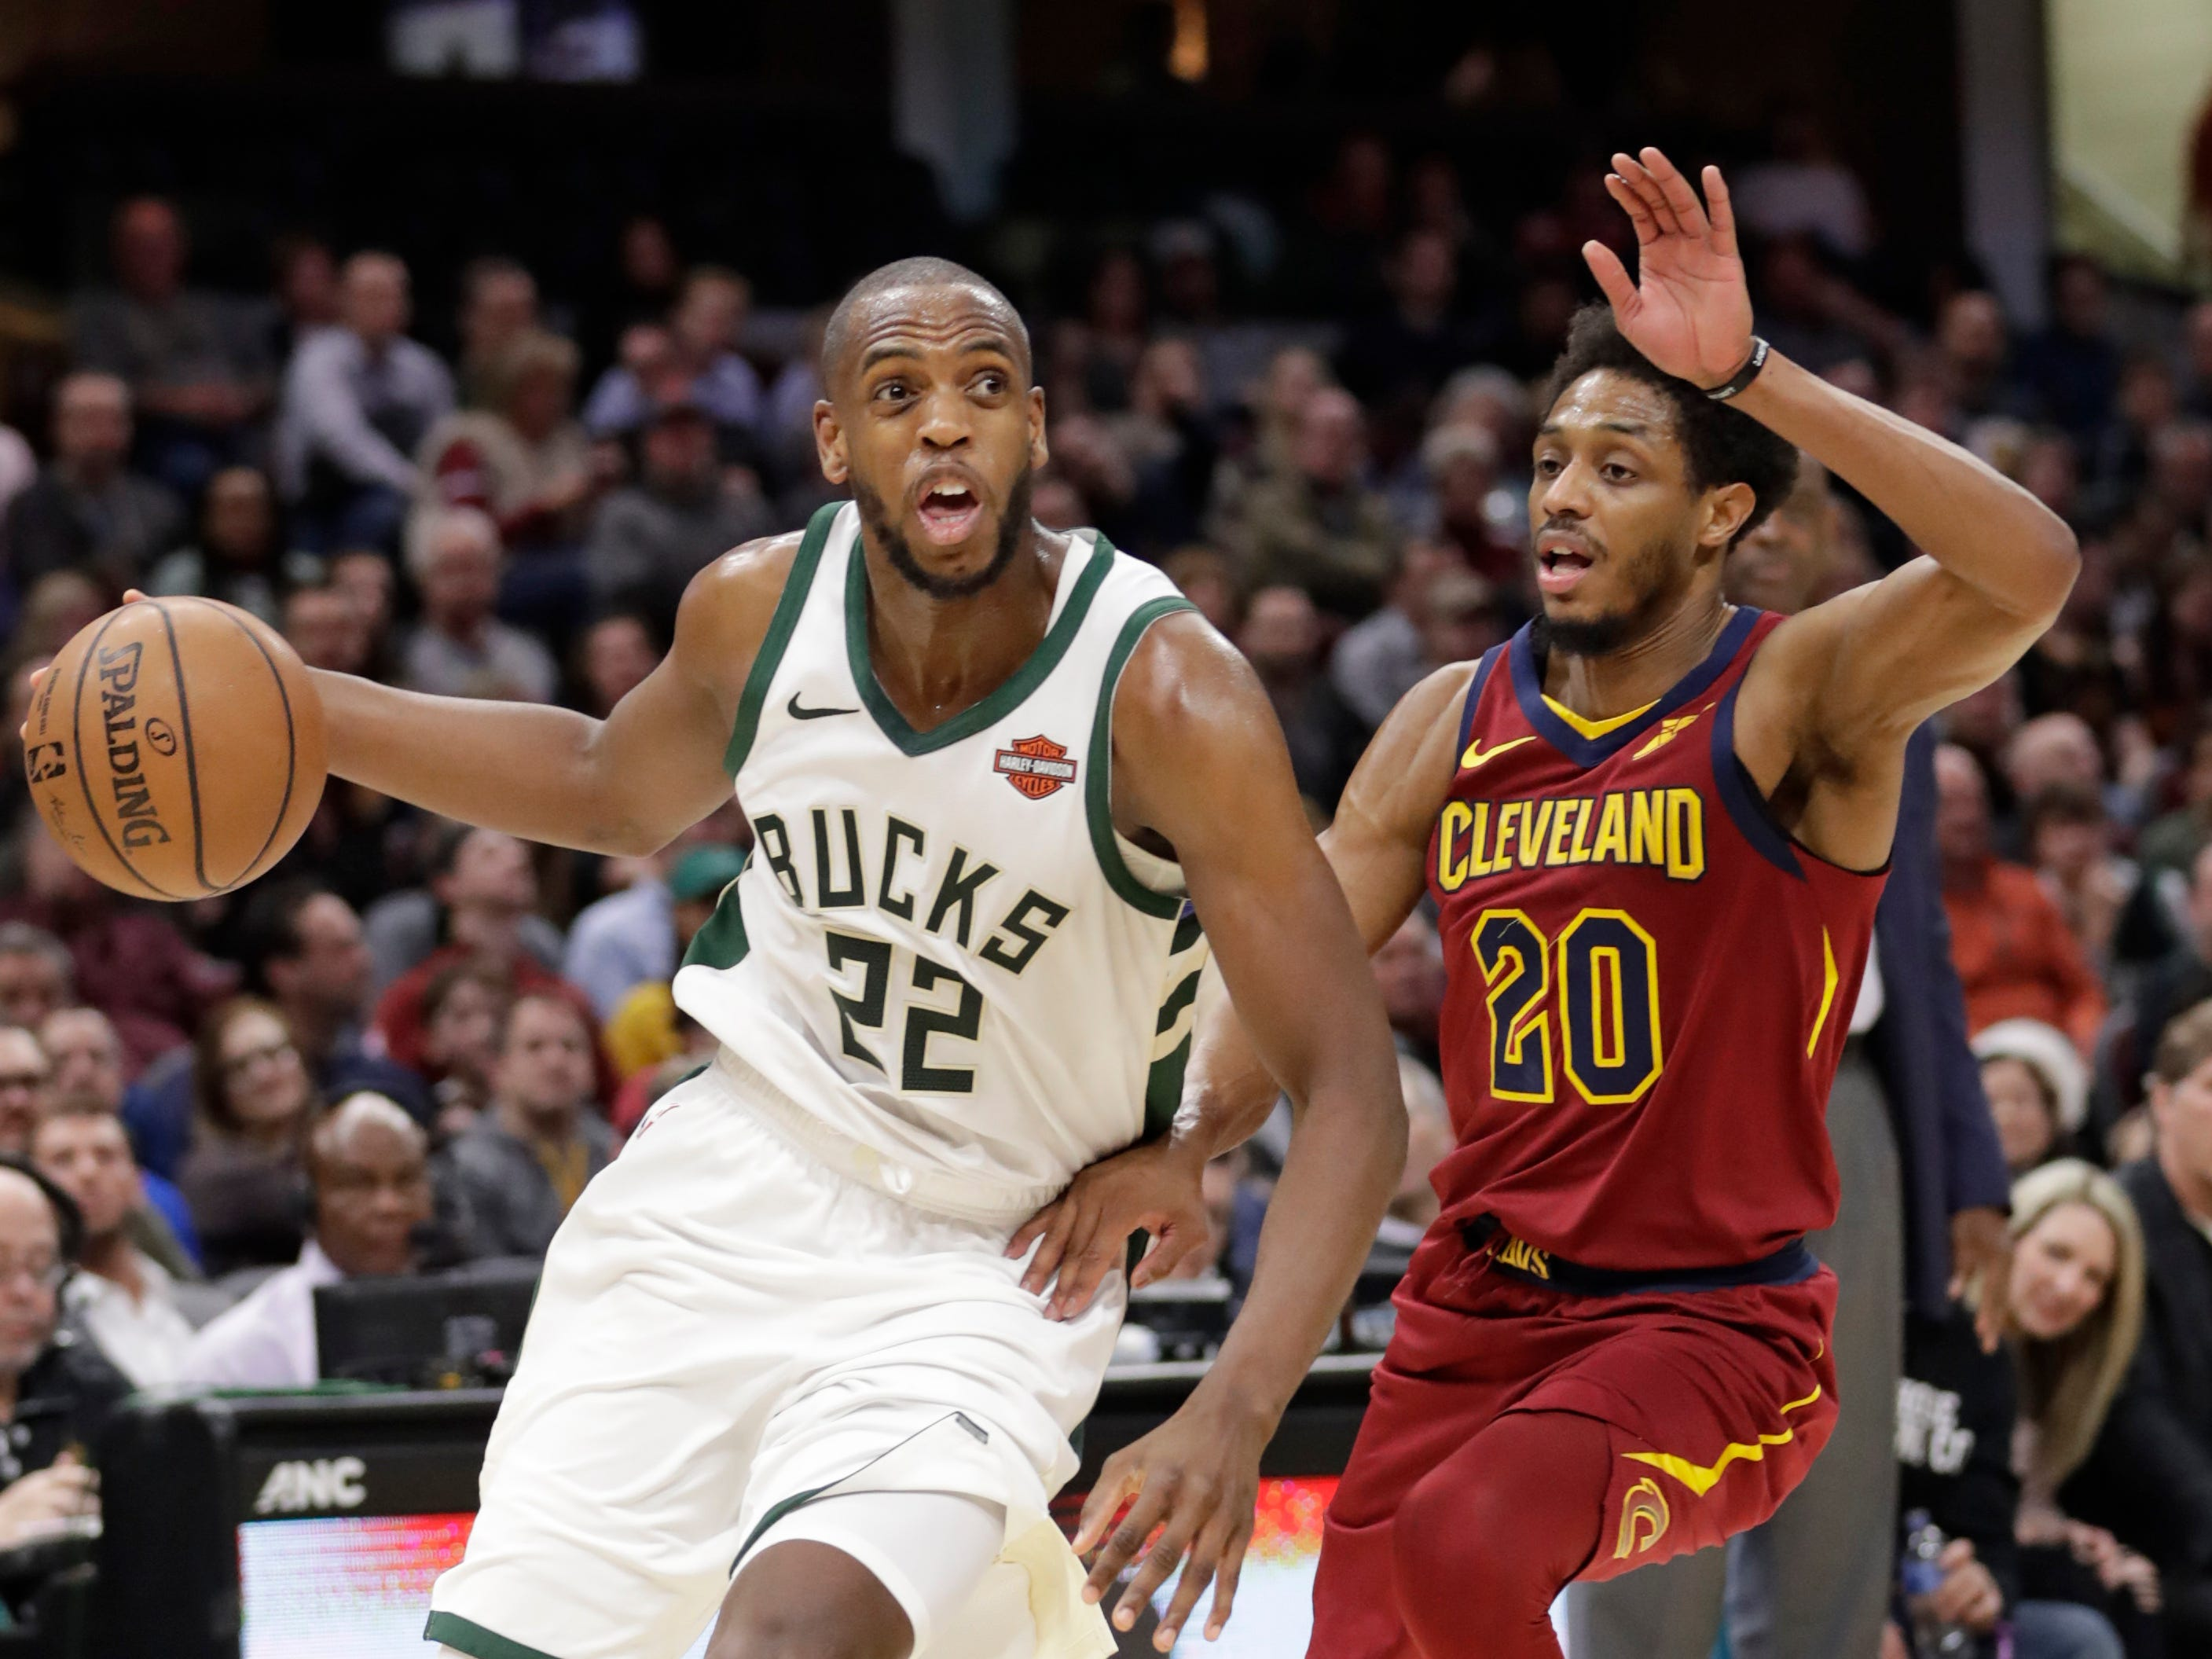 Bucks forward Khris Middleton easily drives past Brandon Knight of the Cavaliers in the first half.